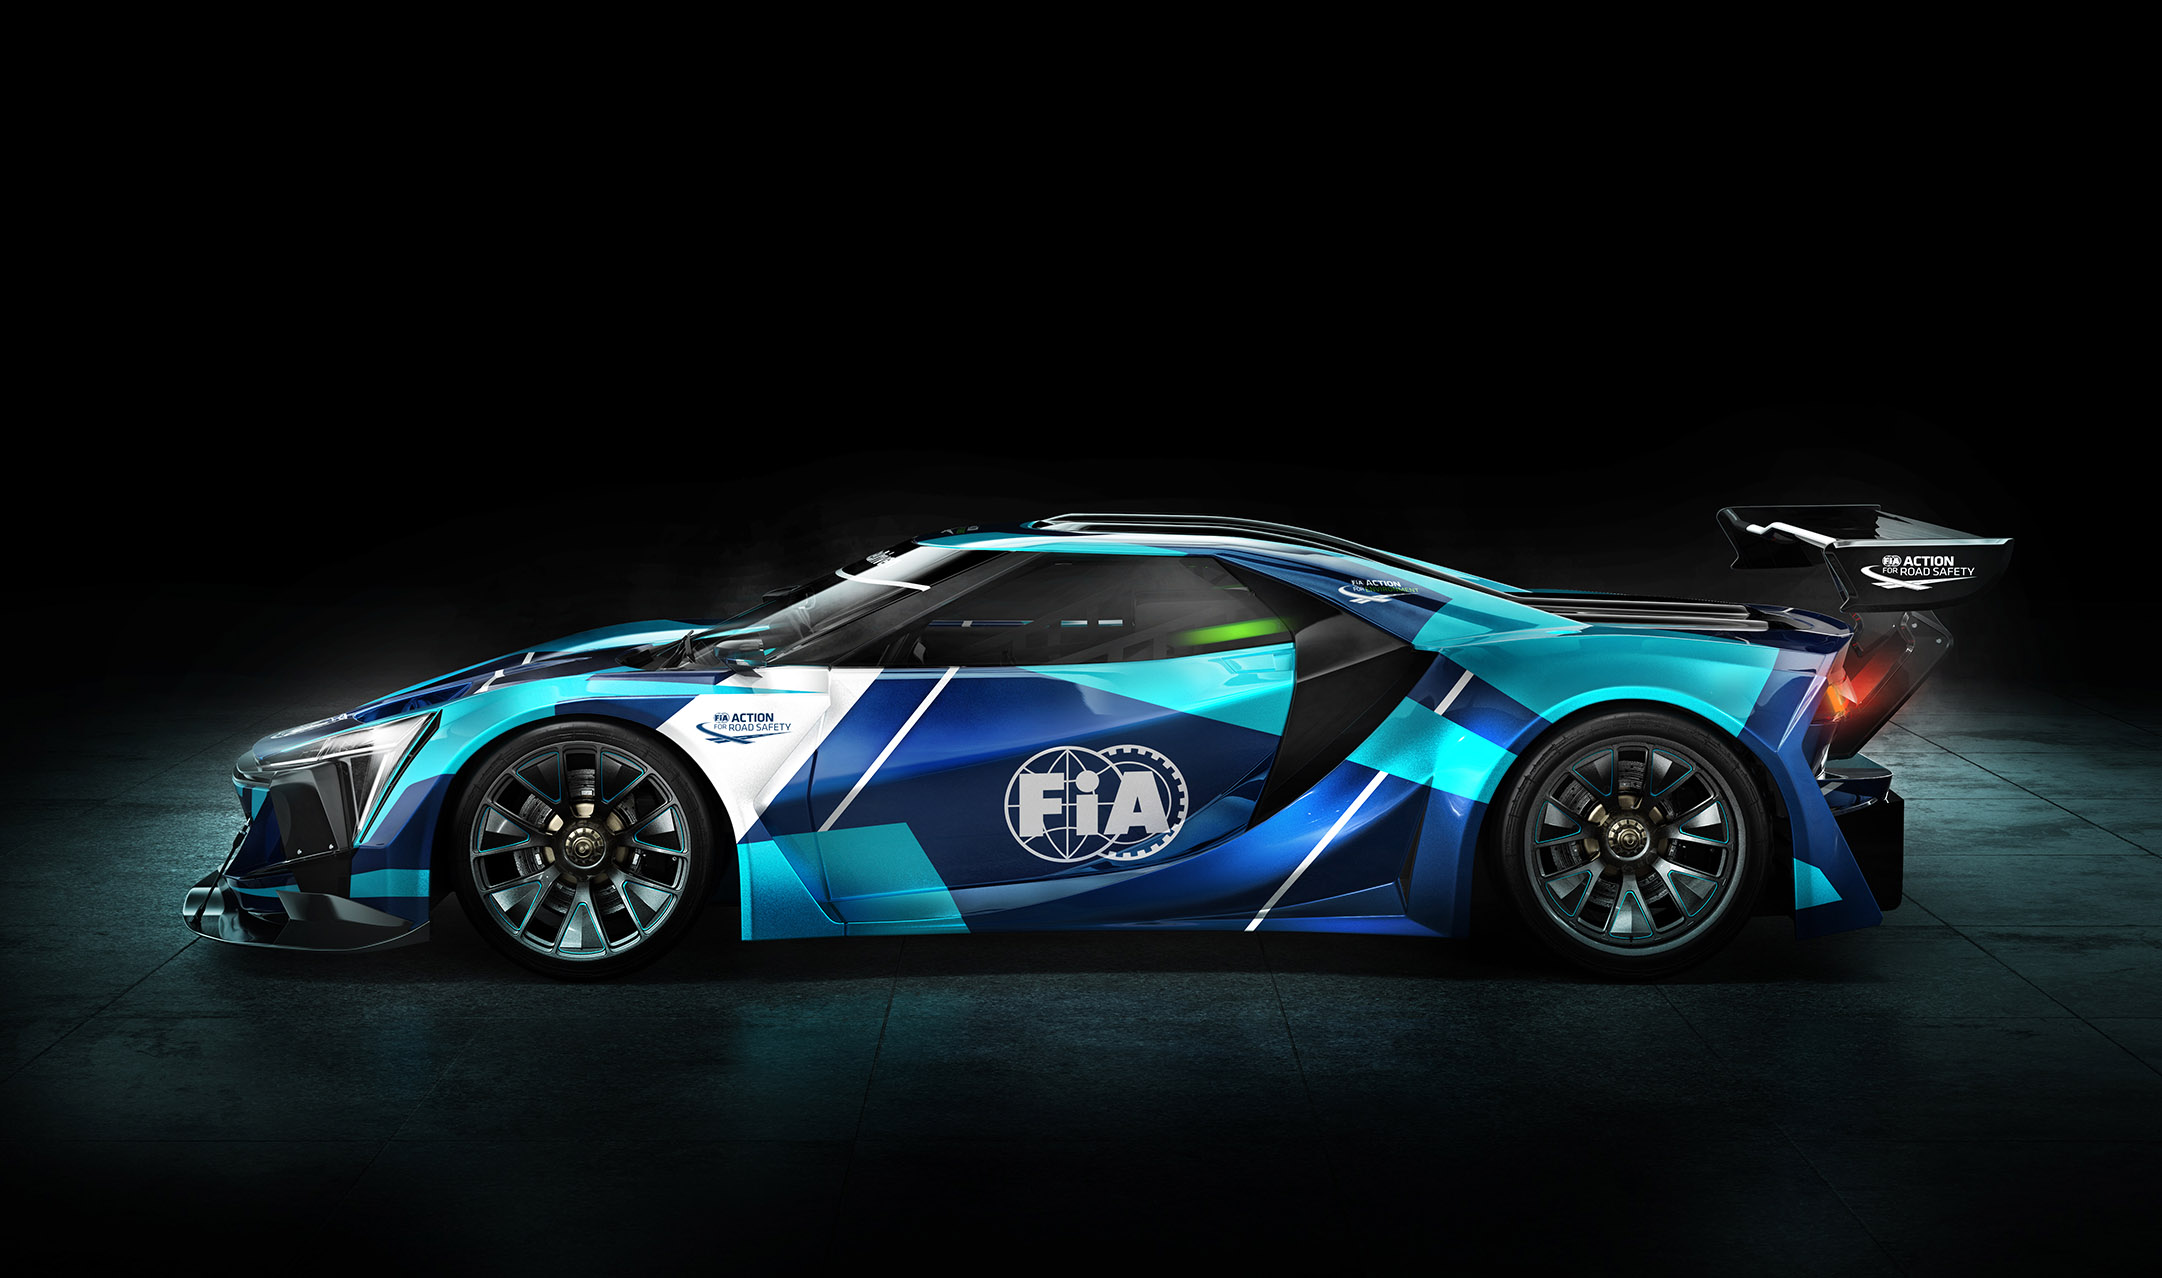 FIA launches 'groundbreaking' electric GT motorsports category | Engadget